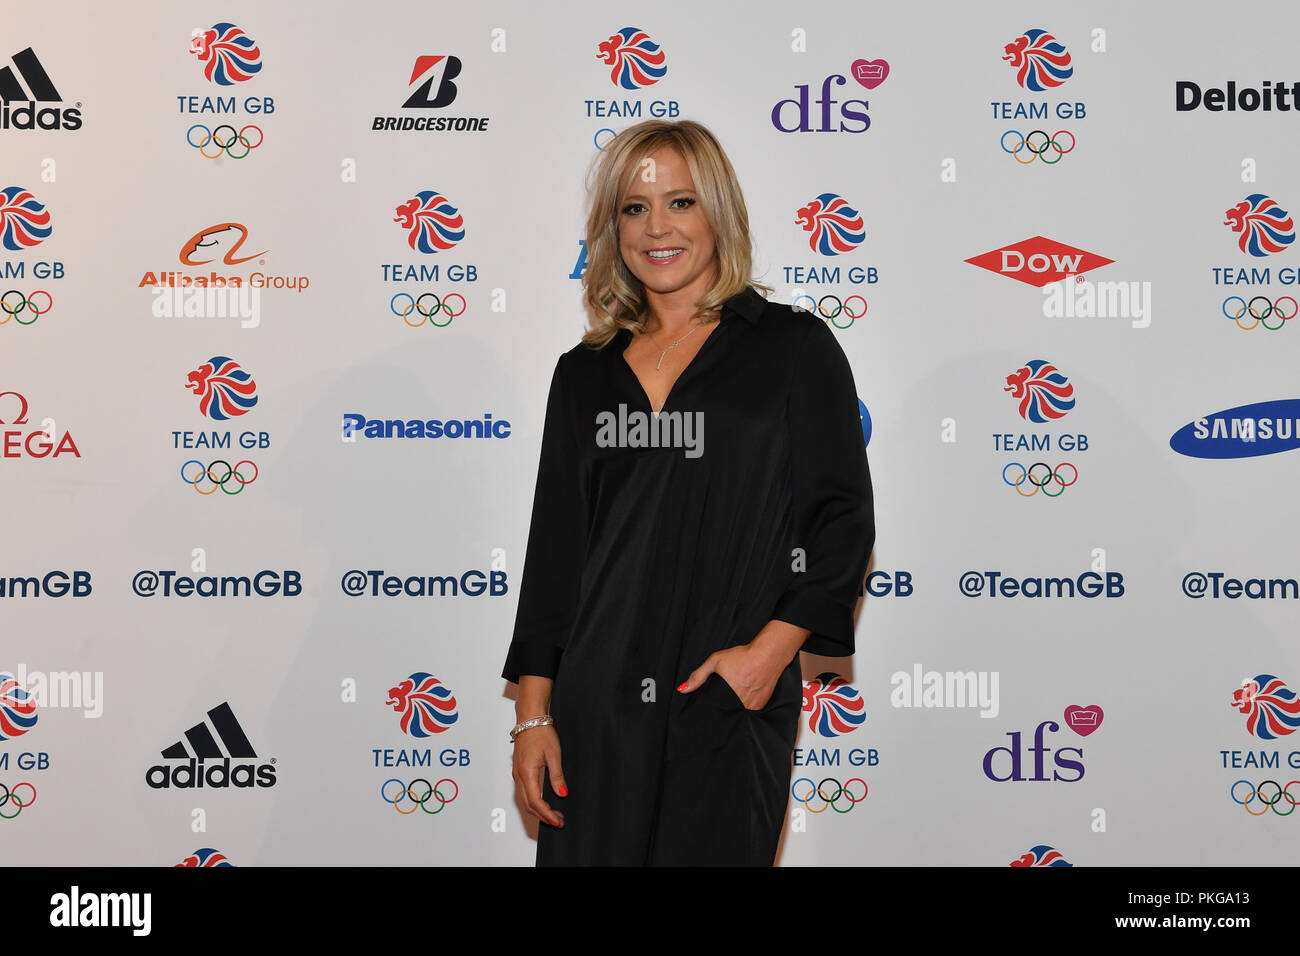 London, UK. 13th September 2018. Jenny Jones arrives for the Team GB Ball 2018 - Red Carpet Arrivals on Thursday, September 13, 2018, at the Royal Horticultural Halls, LONDON ENGLAND. Credit: Taka Wu/Alamy Live News - Stock Image